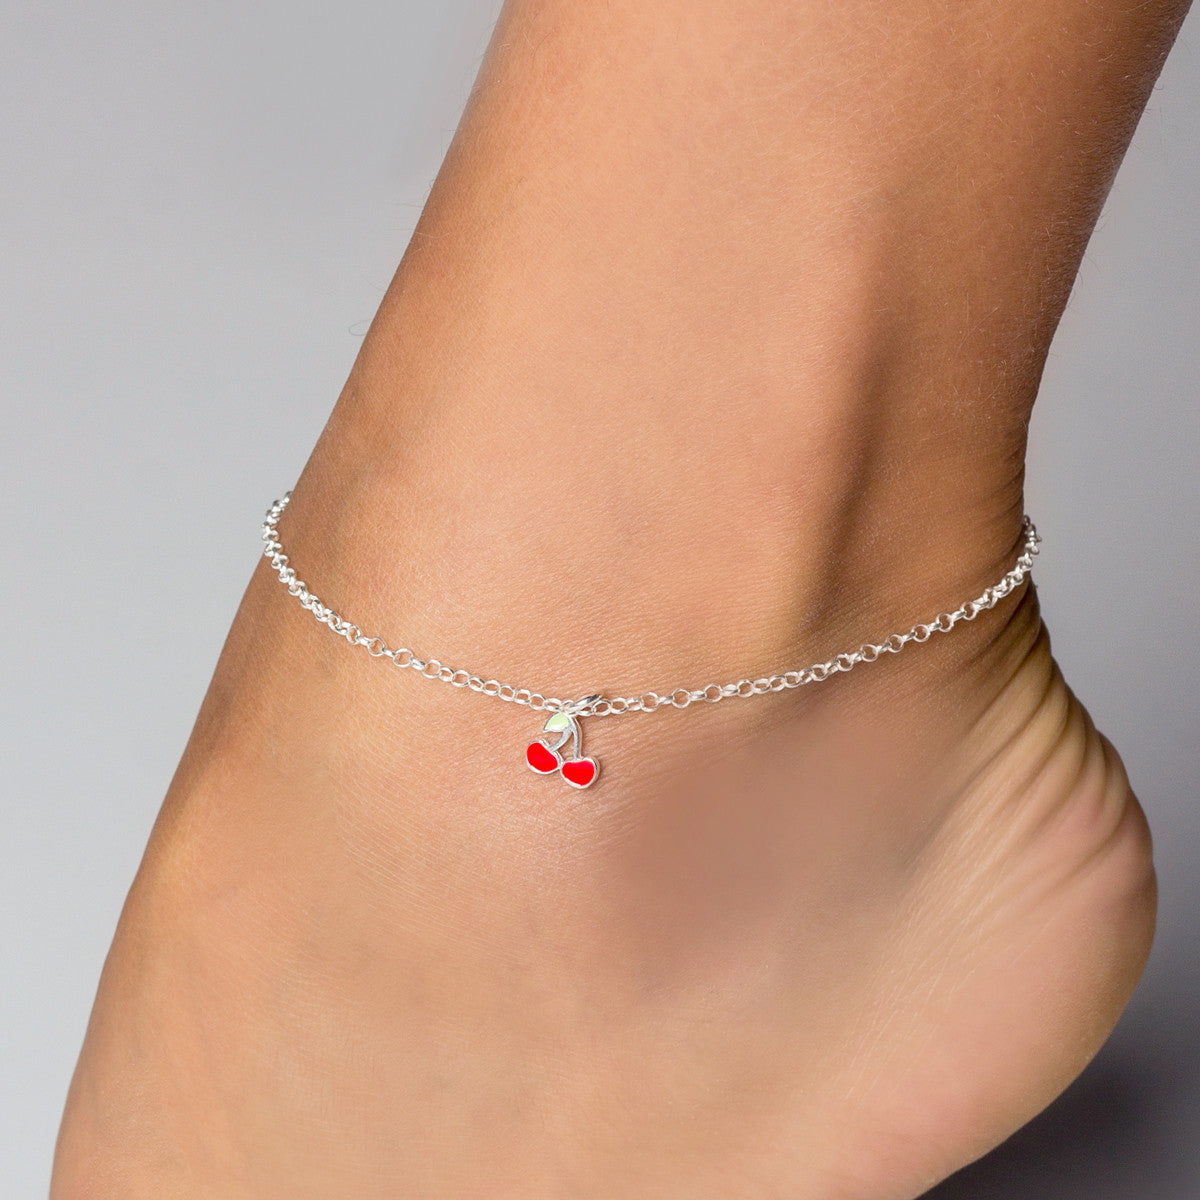 inch gold yellow sterling anklets link anklet silver search s ankle cfm list womens jewelry heart women bracelet